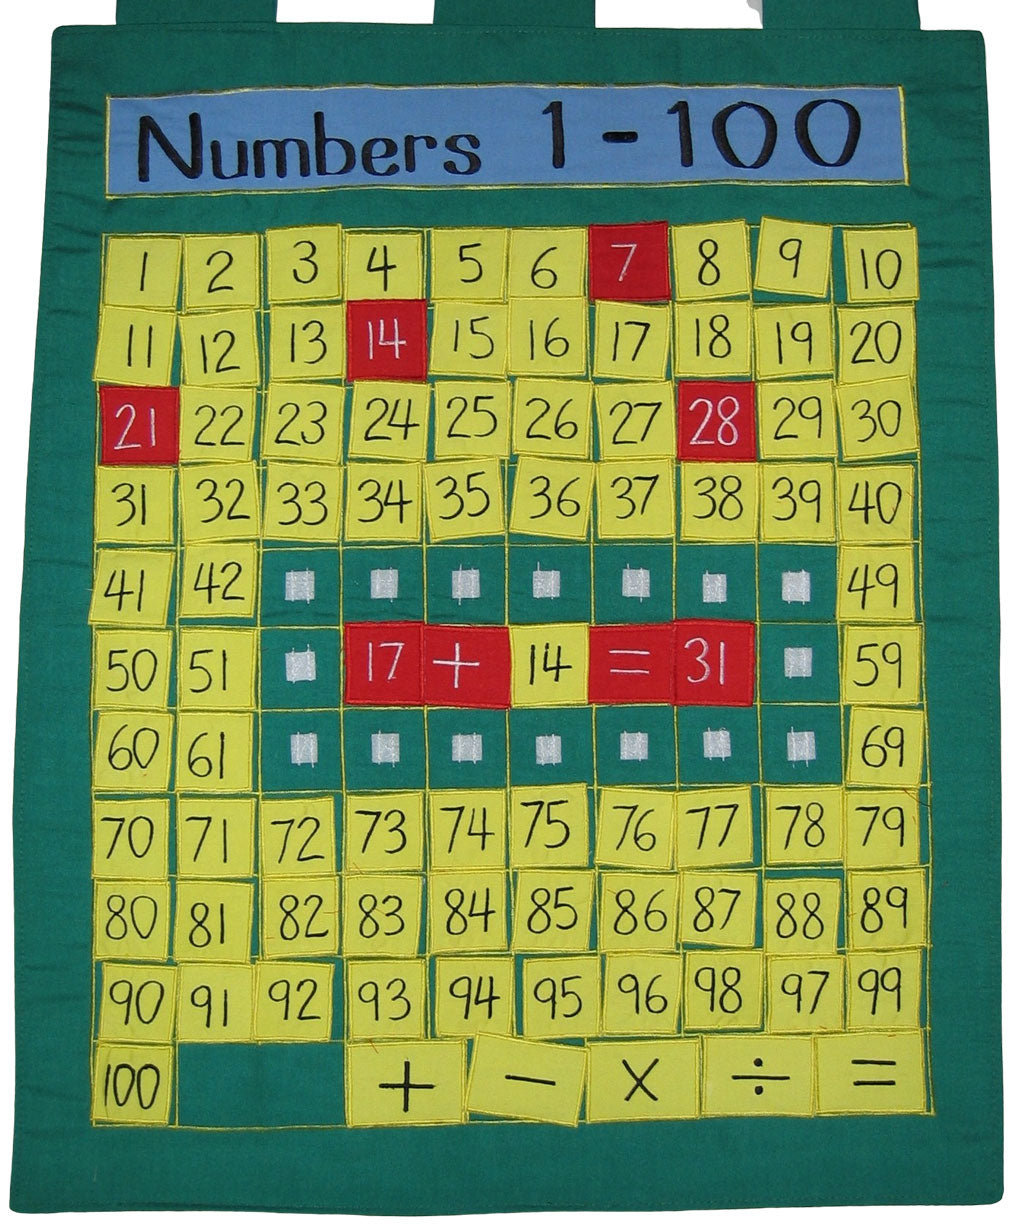 0-100 Counting Chart - Classroom Size Material Wall Chart